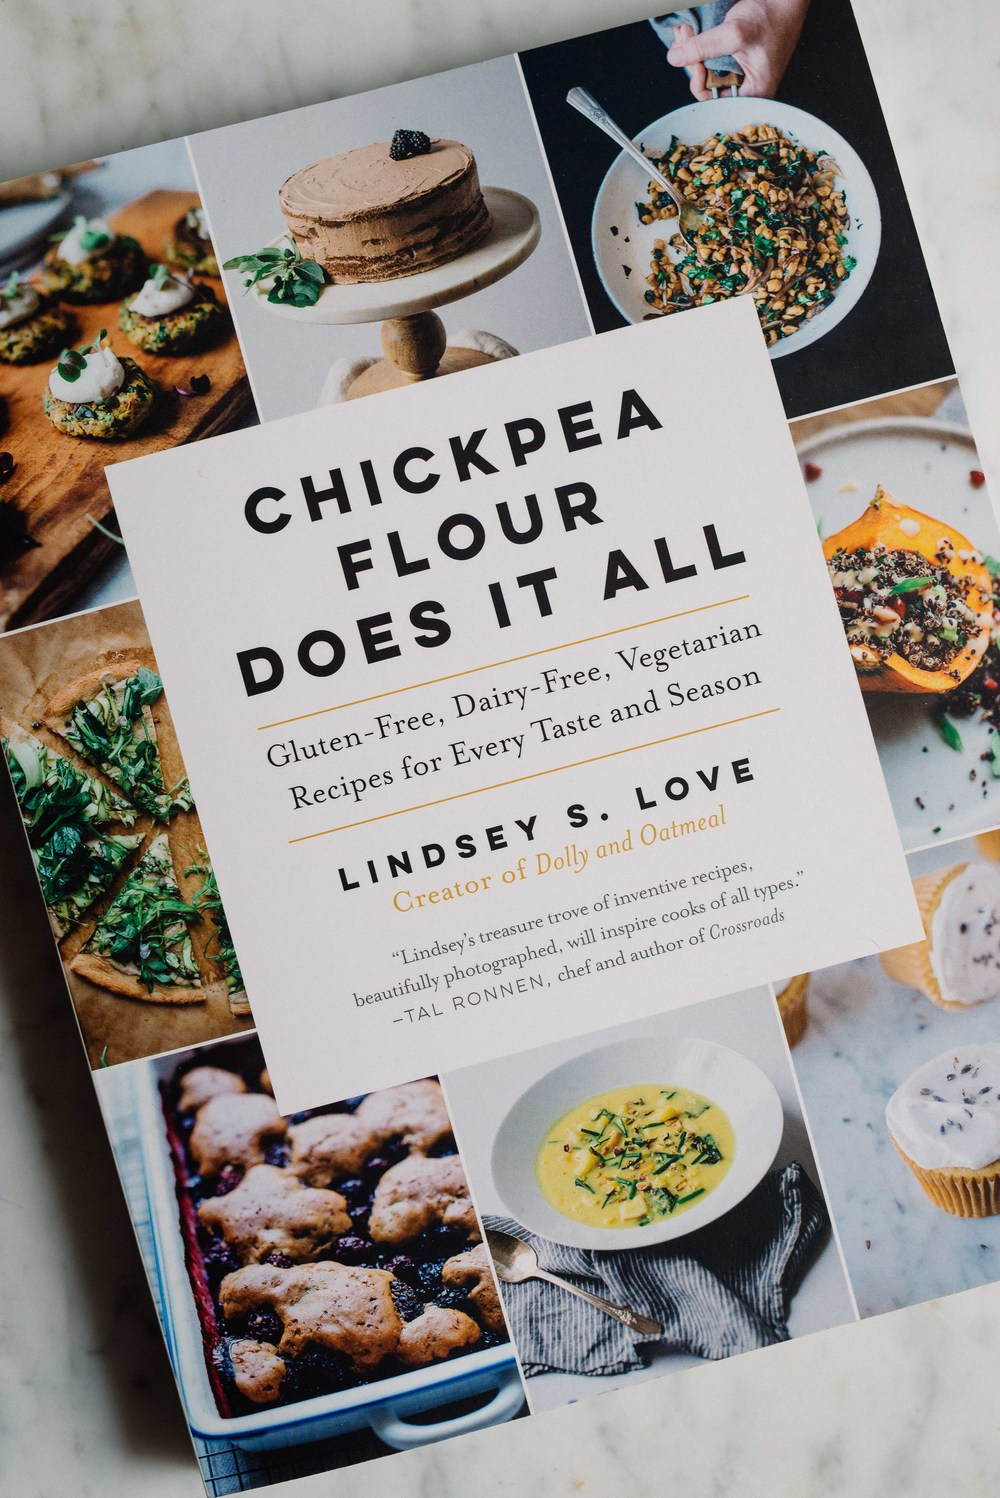 Chickpea Flour Does It All | Lindsey Love